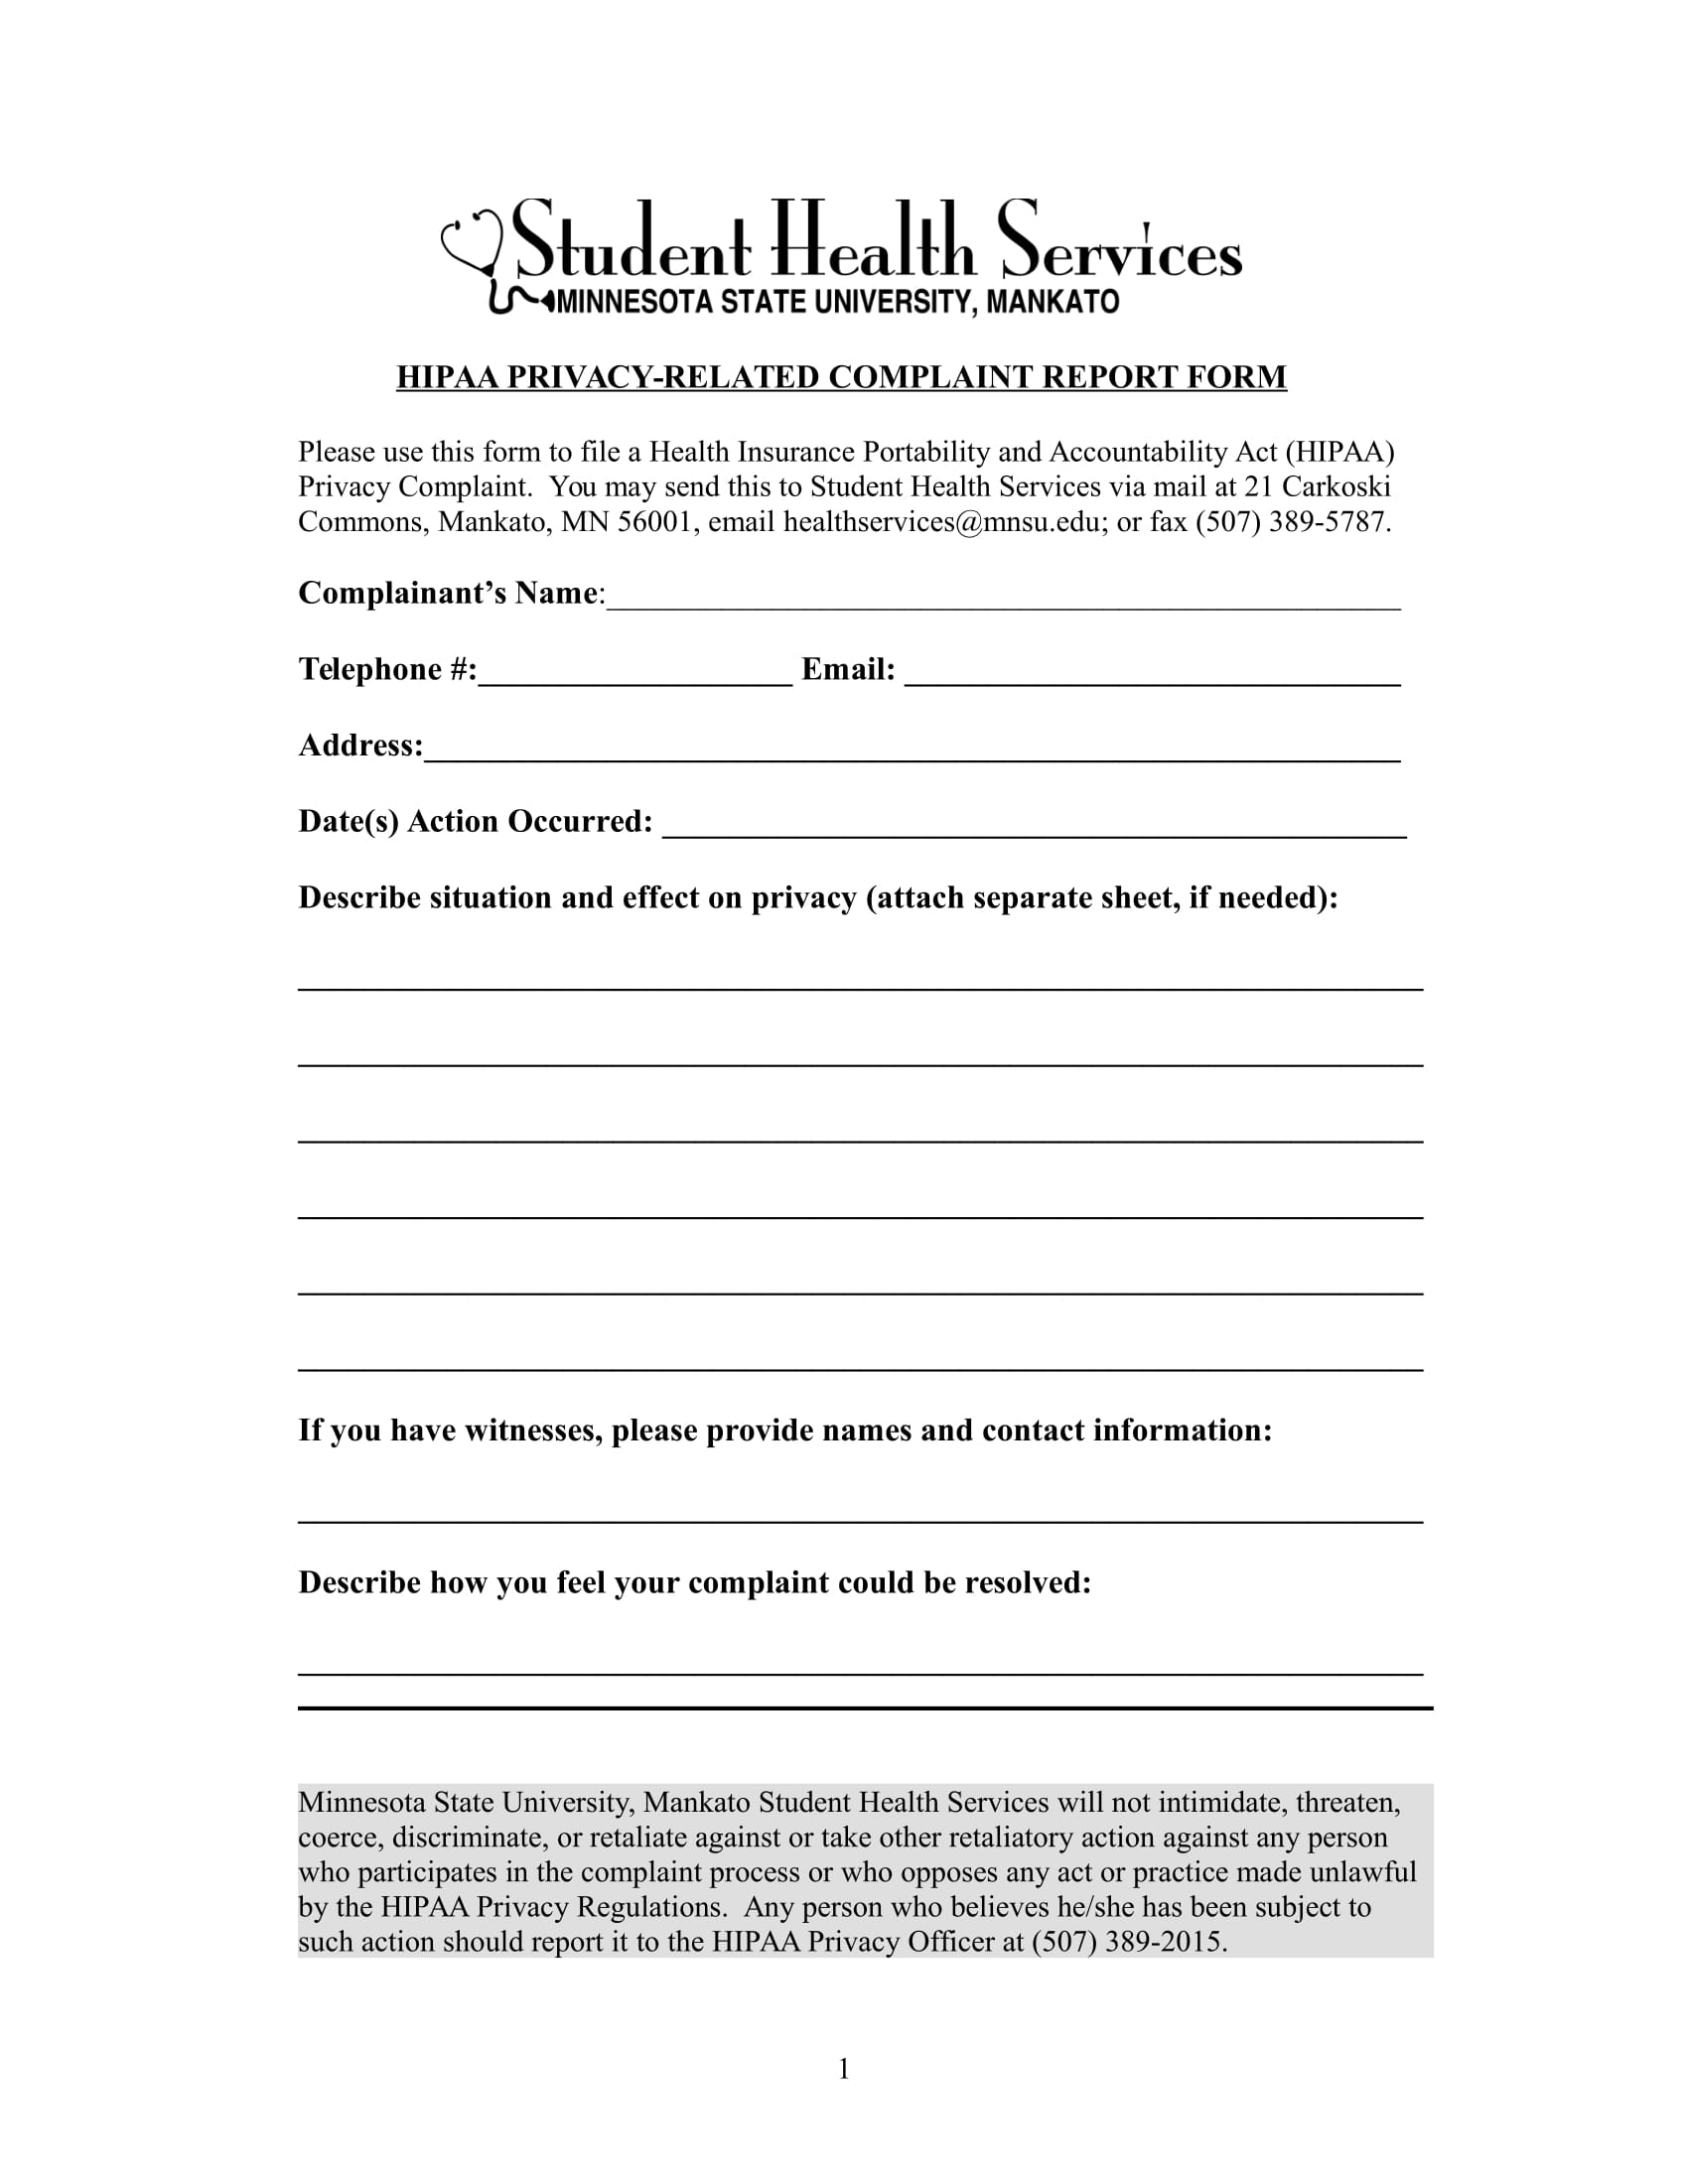 Medical incident report form employee medical blank for Patient report form template download